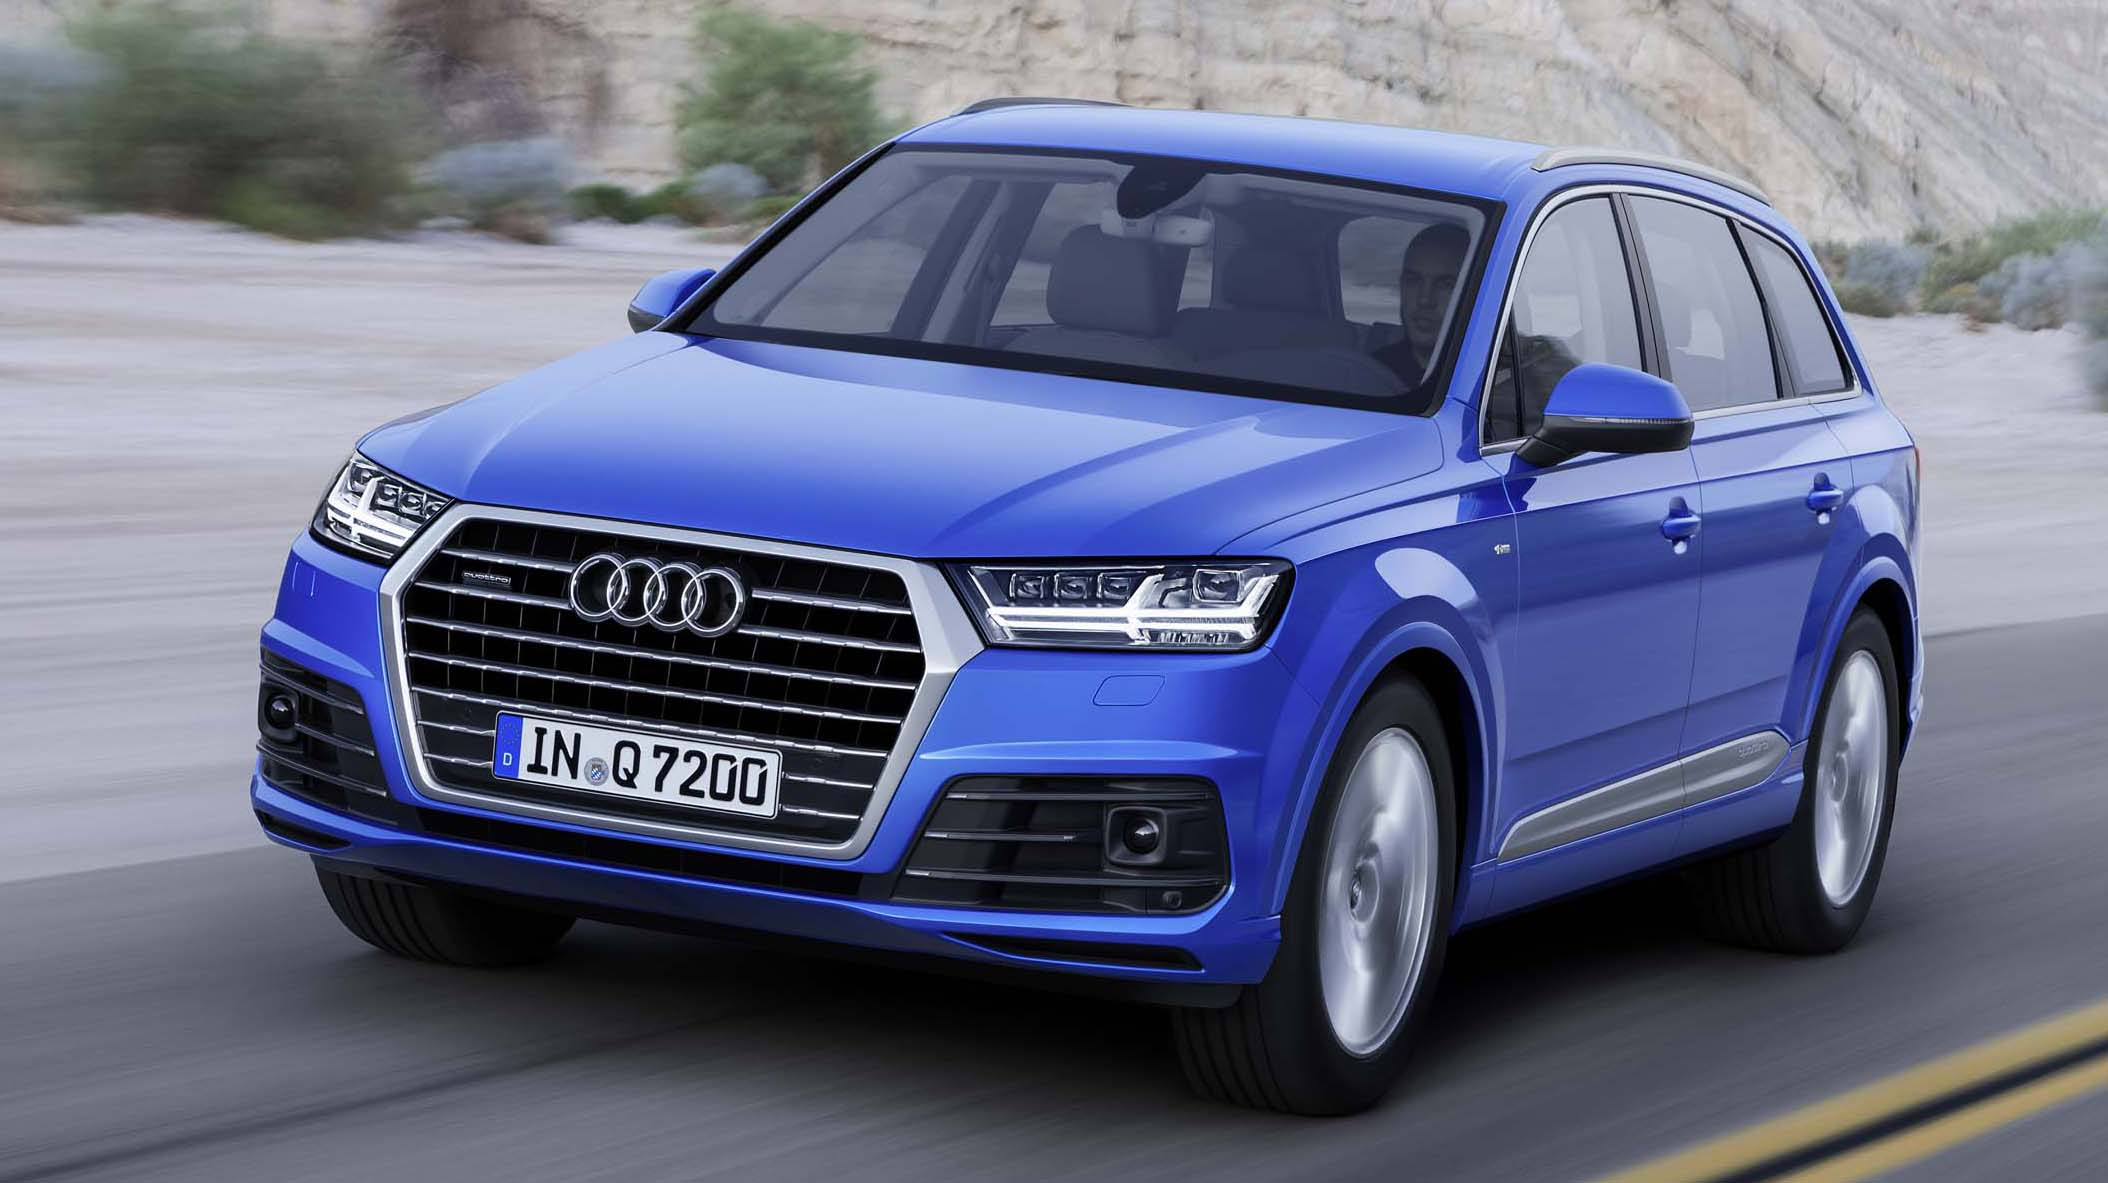 Range-topping Audi Q8 SUV reportedly in the works